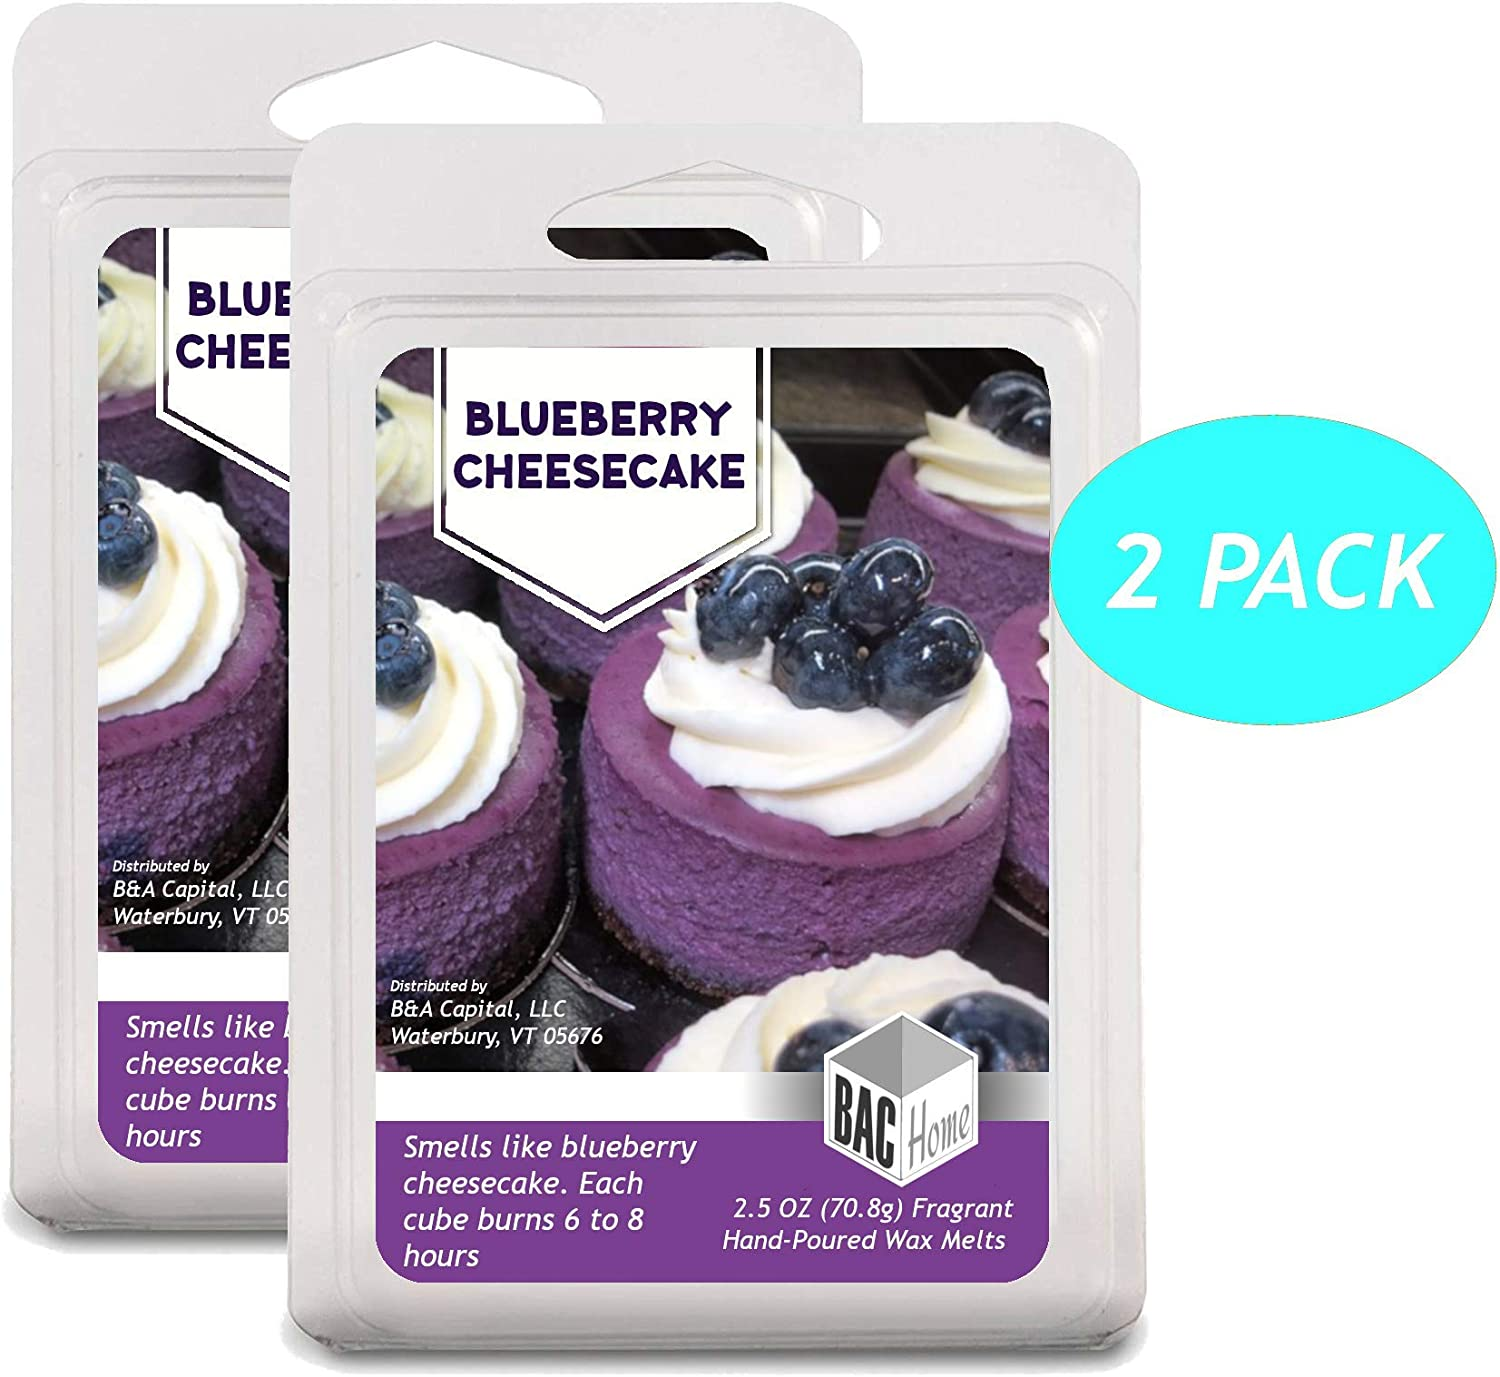 BAC Home Blueberry Cheesecake Soy Blend Scented Wax Melts Wax Cubes, 2.5 oz, [6 Cubes] (2)